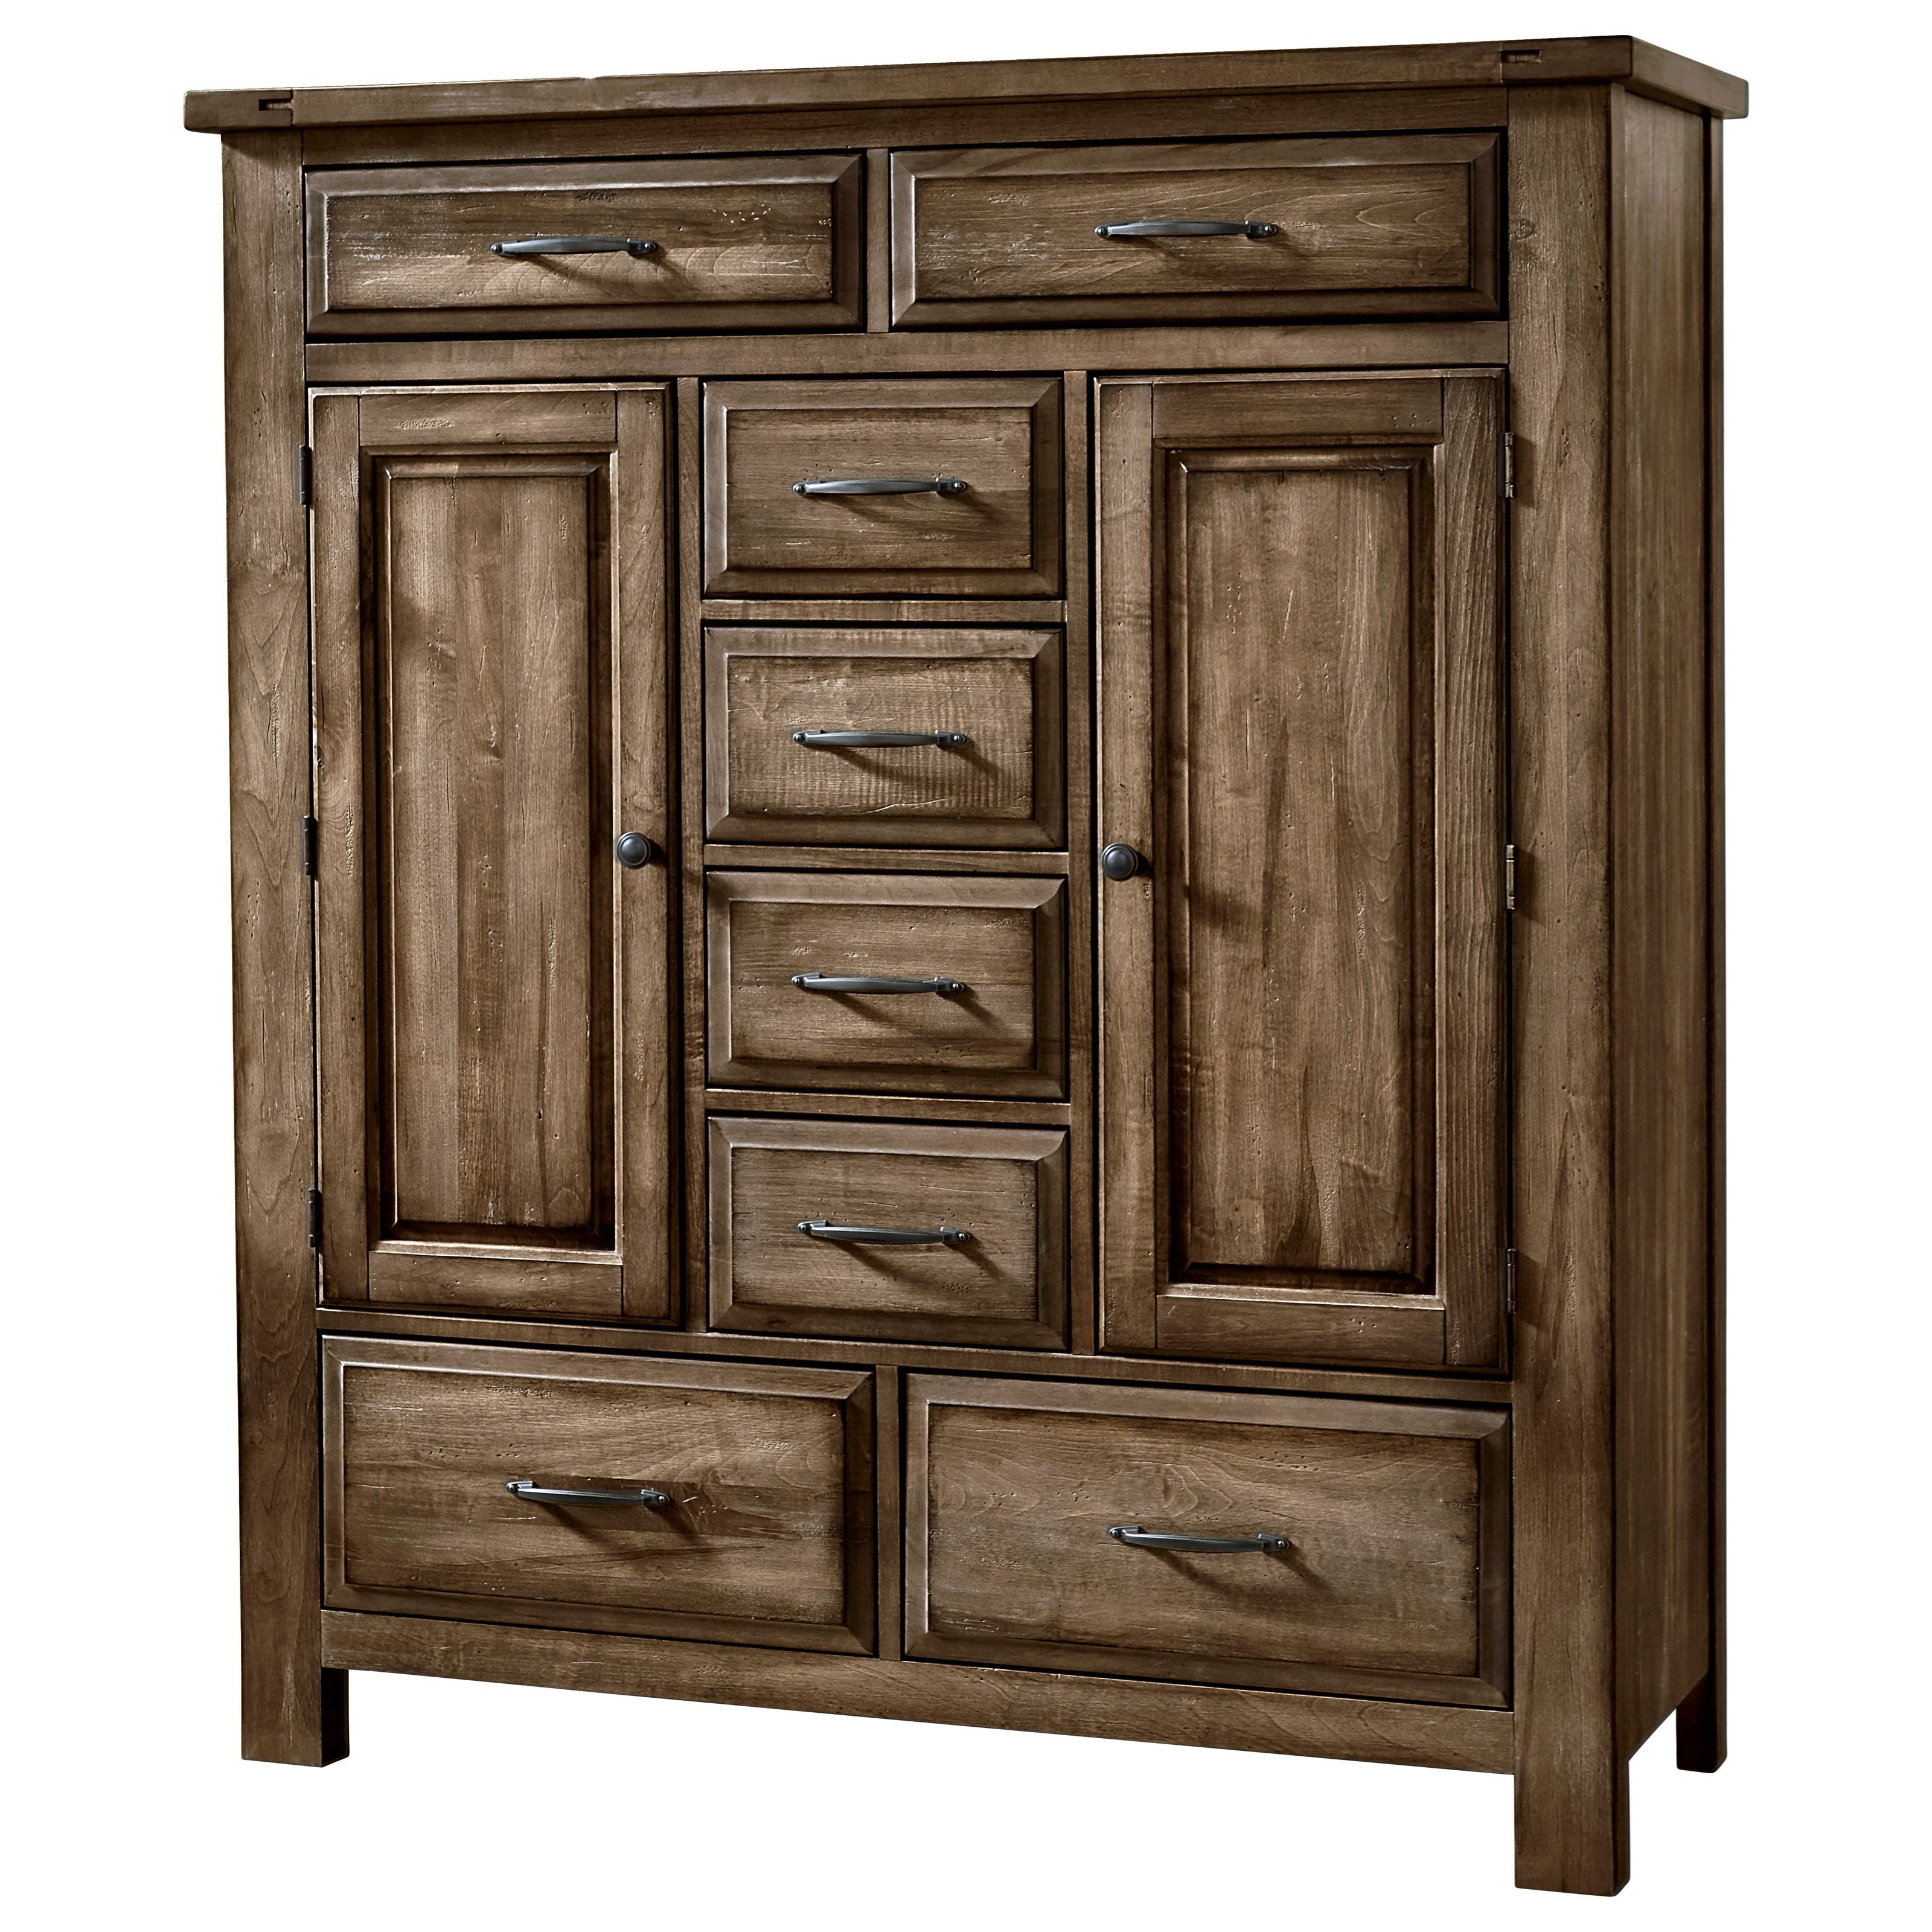 Maple Road Sweater Chest - 8 Drawers 2 Doors by Artisan & Post at Zak's Home